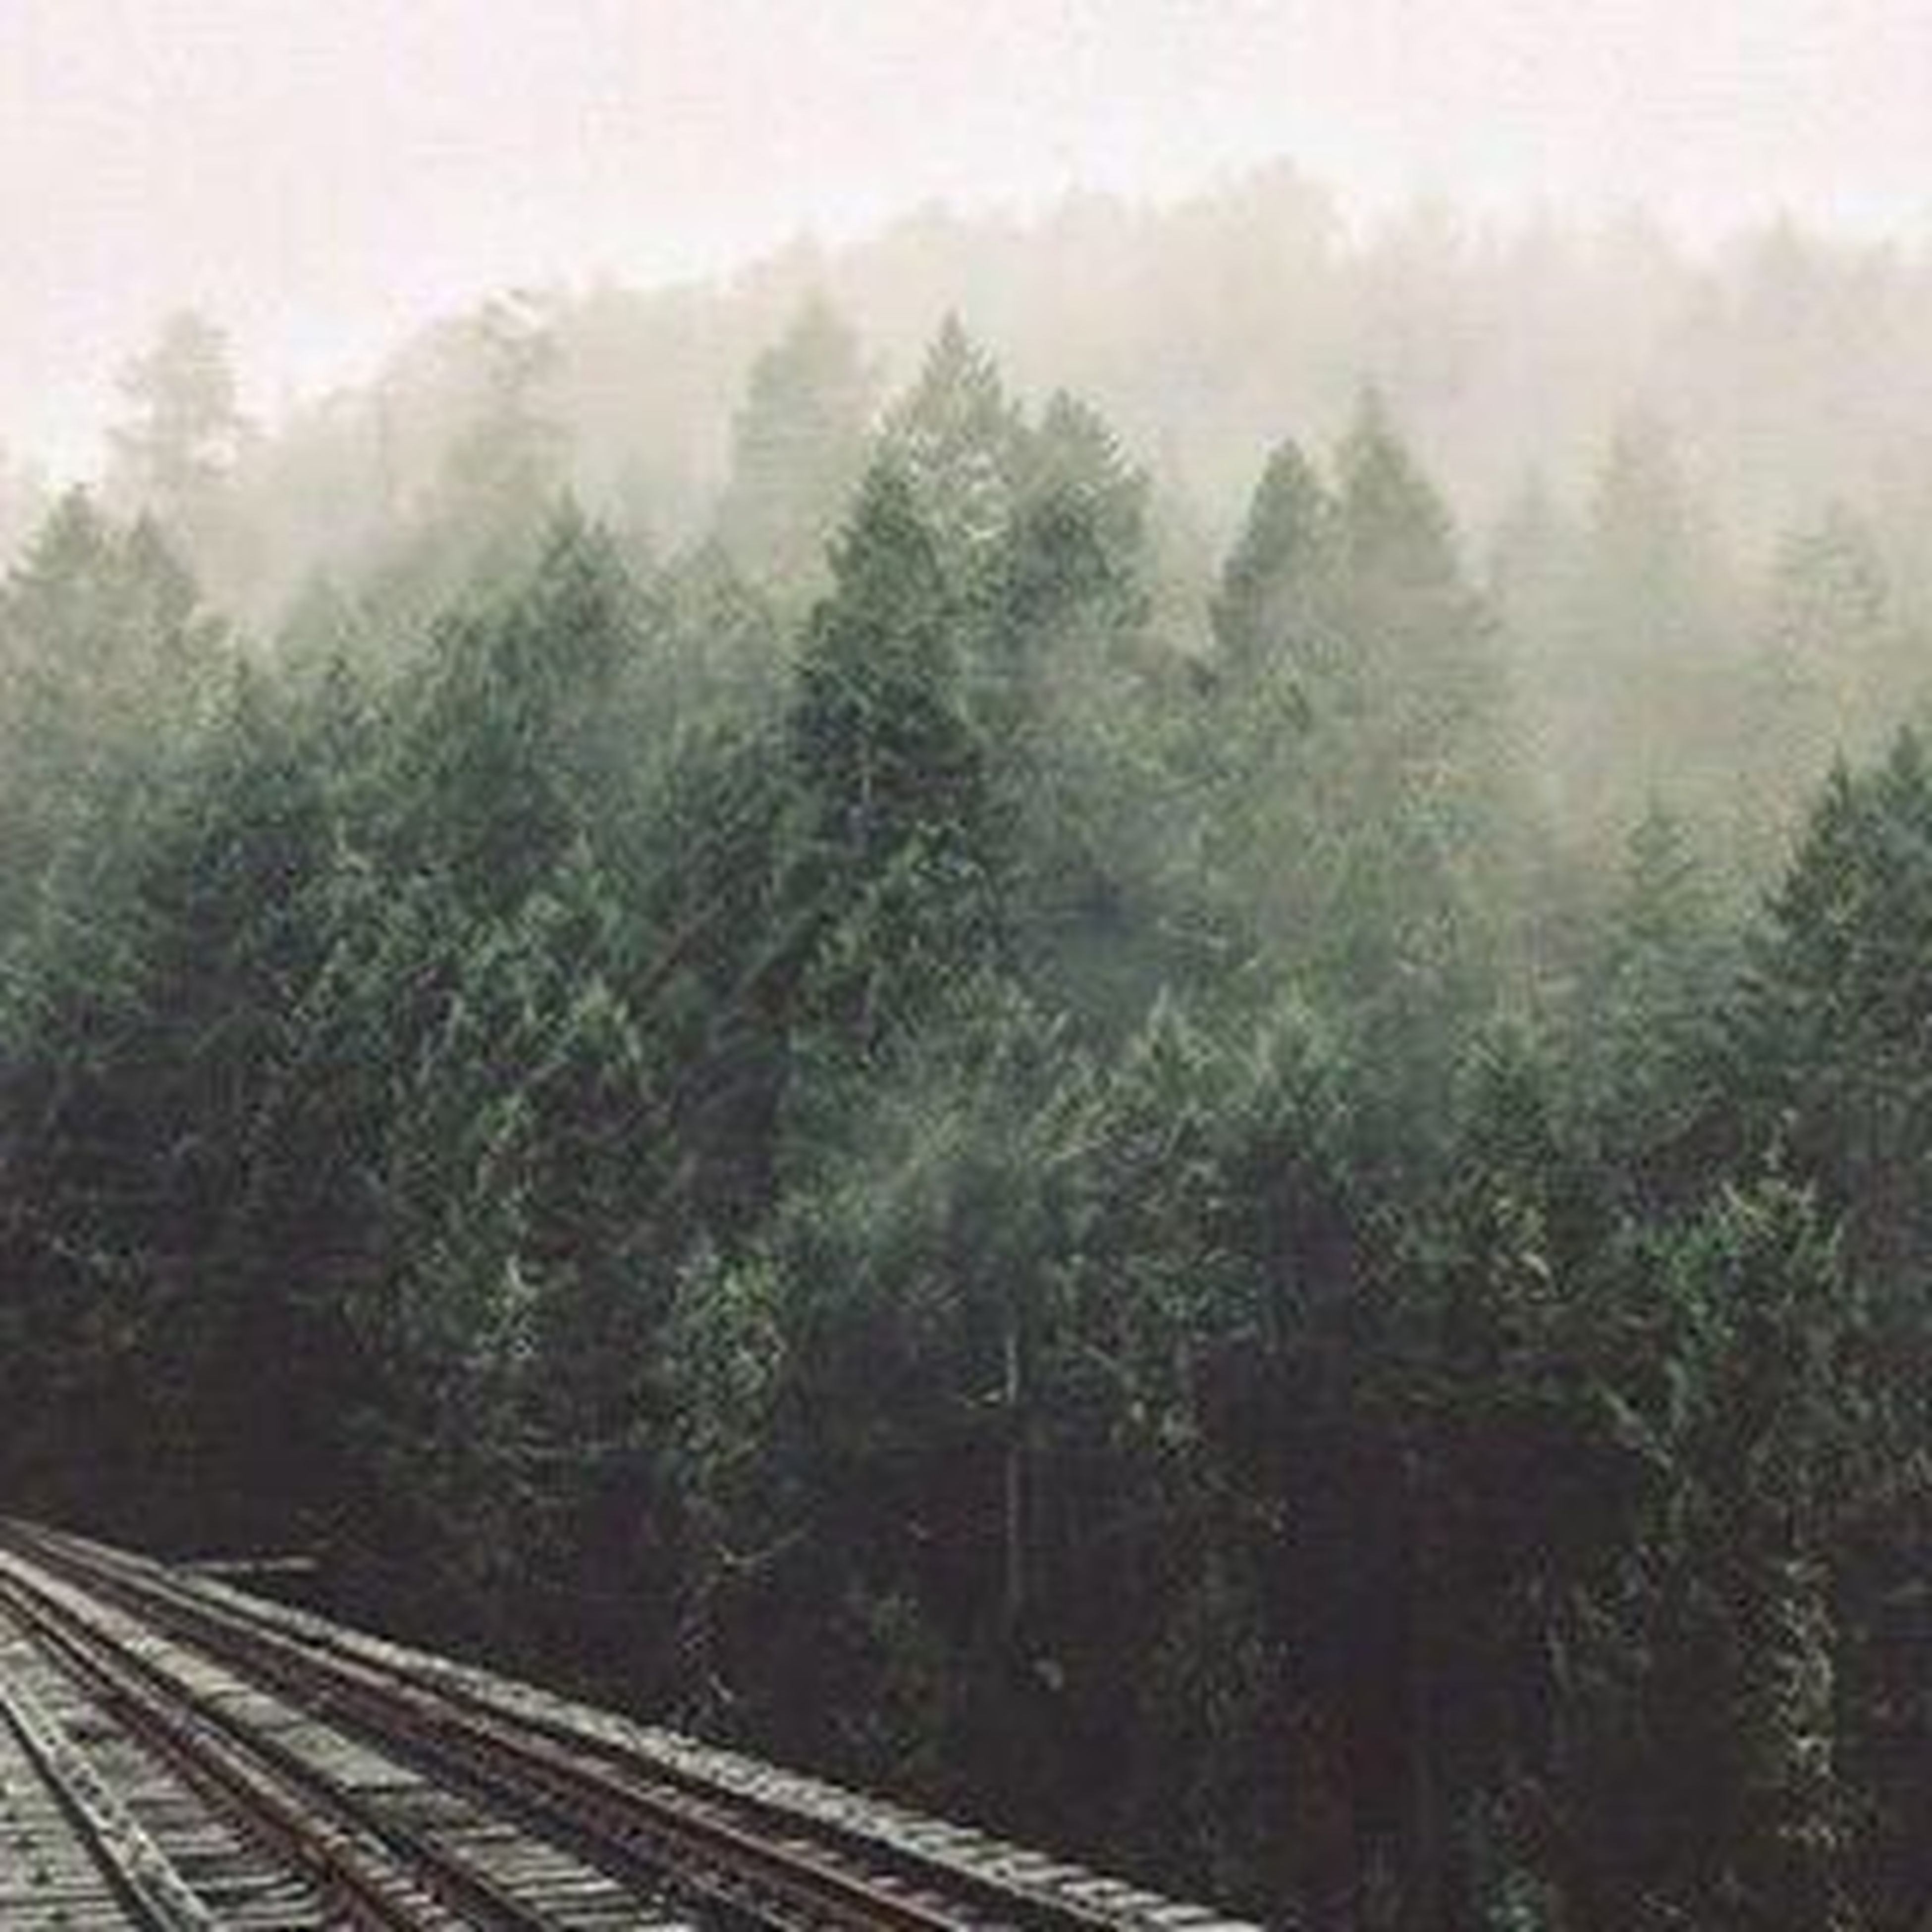 tree, fog, foggy, tranquility, tranquil scene, growth, nature, landscape, beauty in nature, weather, scenics, field, forest, sky, non-urban scene, day, fence, outdoors, plant, high angle view